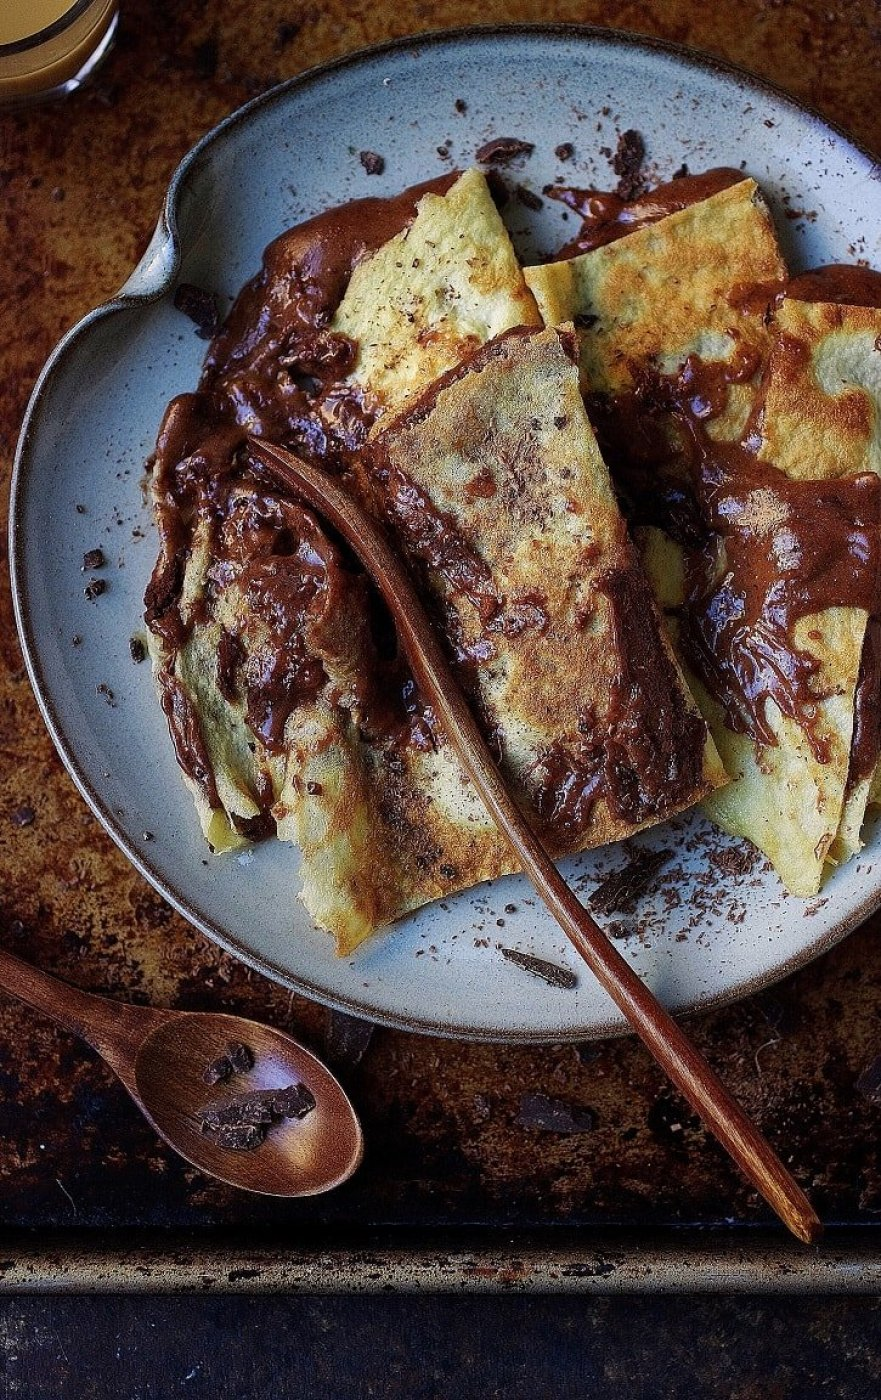 Paleo Chocolate Almond Butter Crepes from I Heart Umami